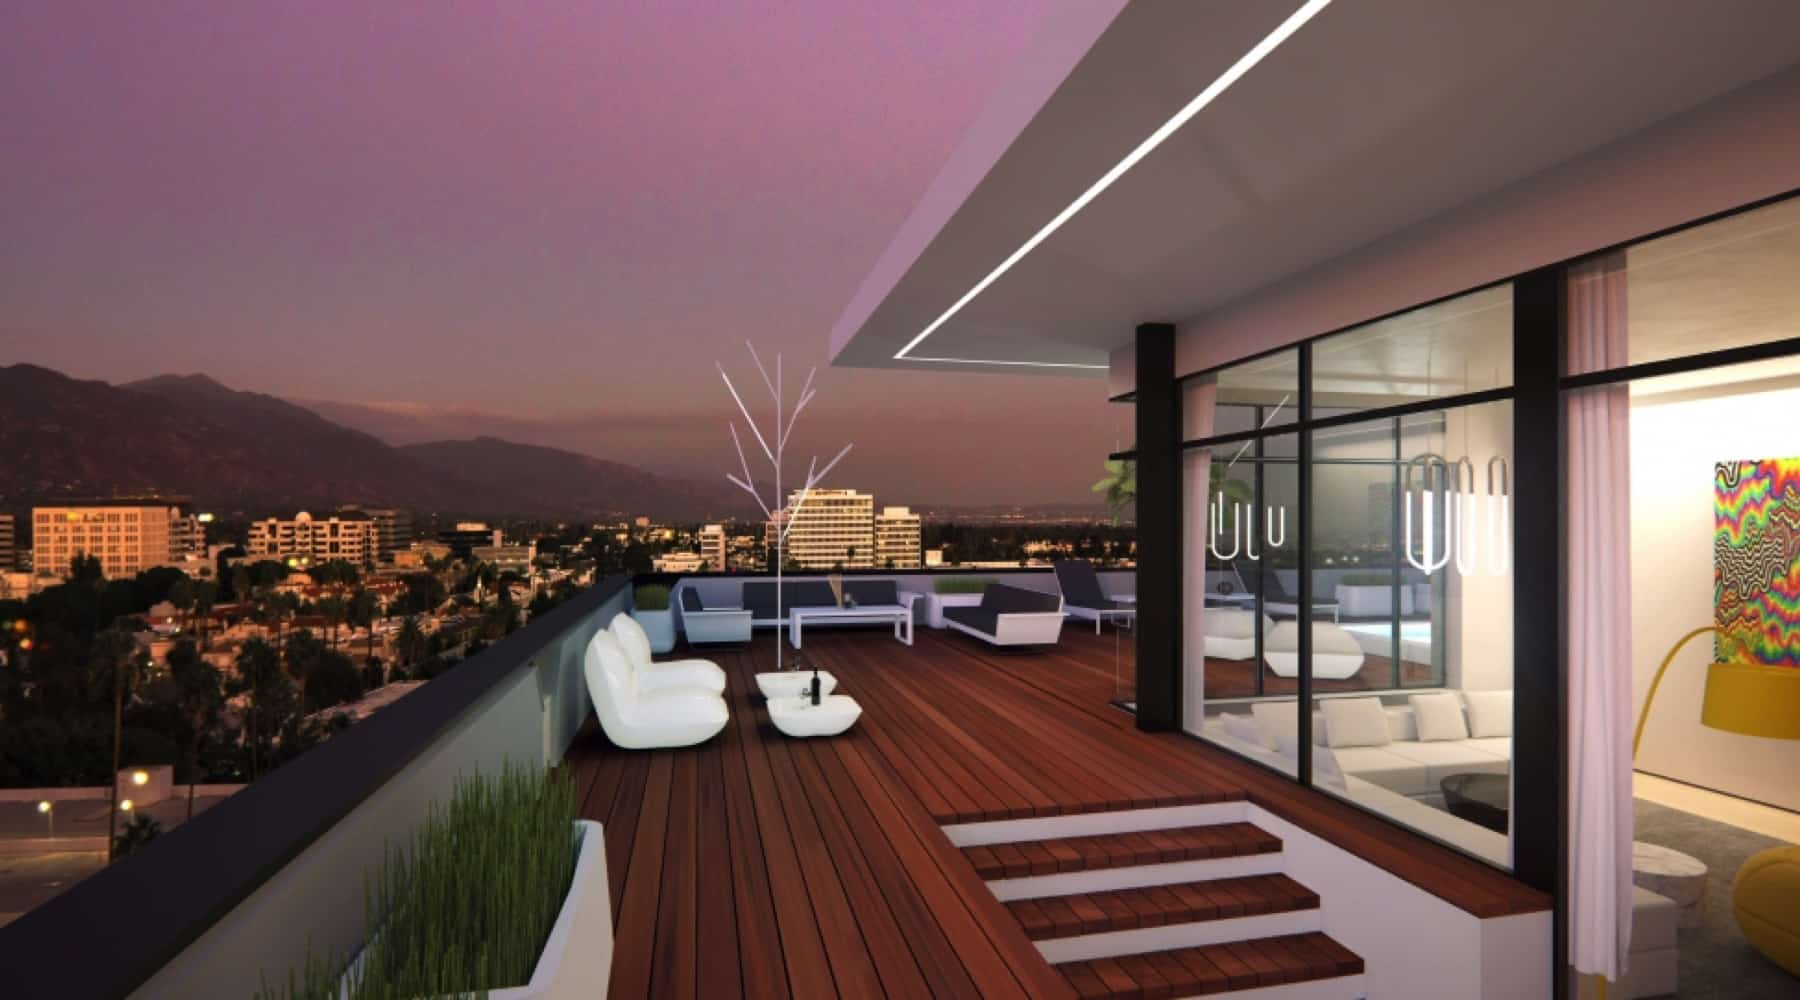 Penthouse_2_Rendering_Deck_Evening